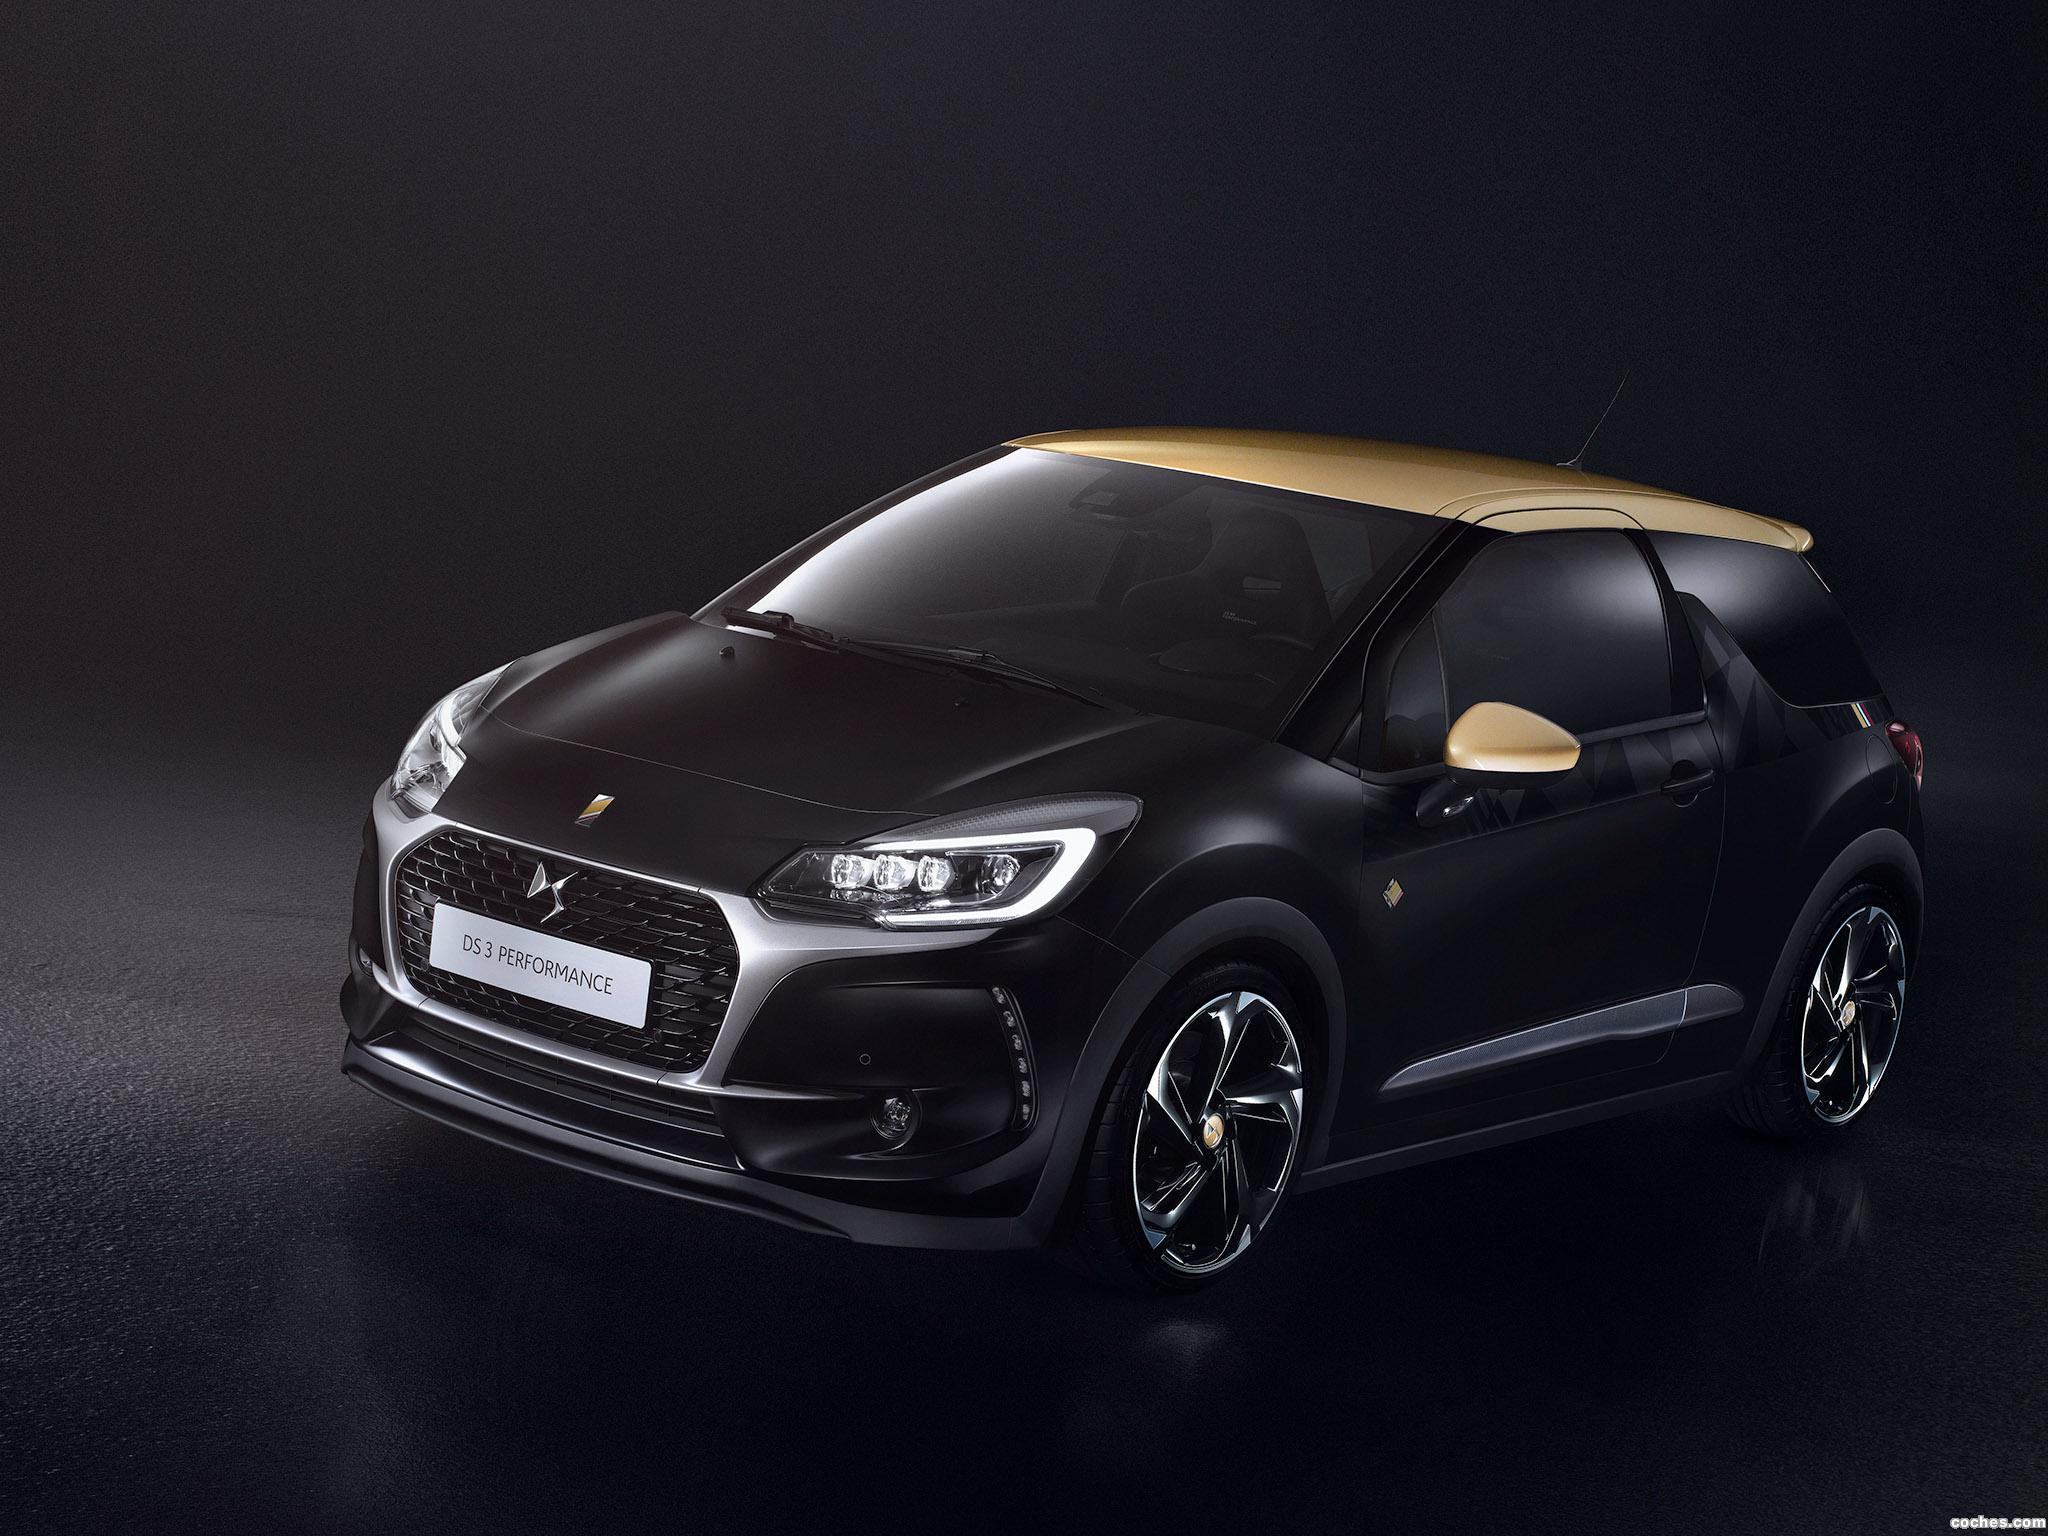 Foto 0 de Citroen DS 3 Performance 2016